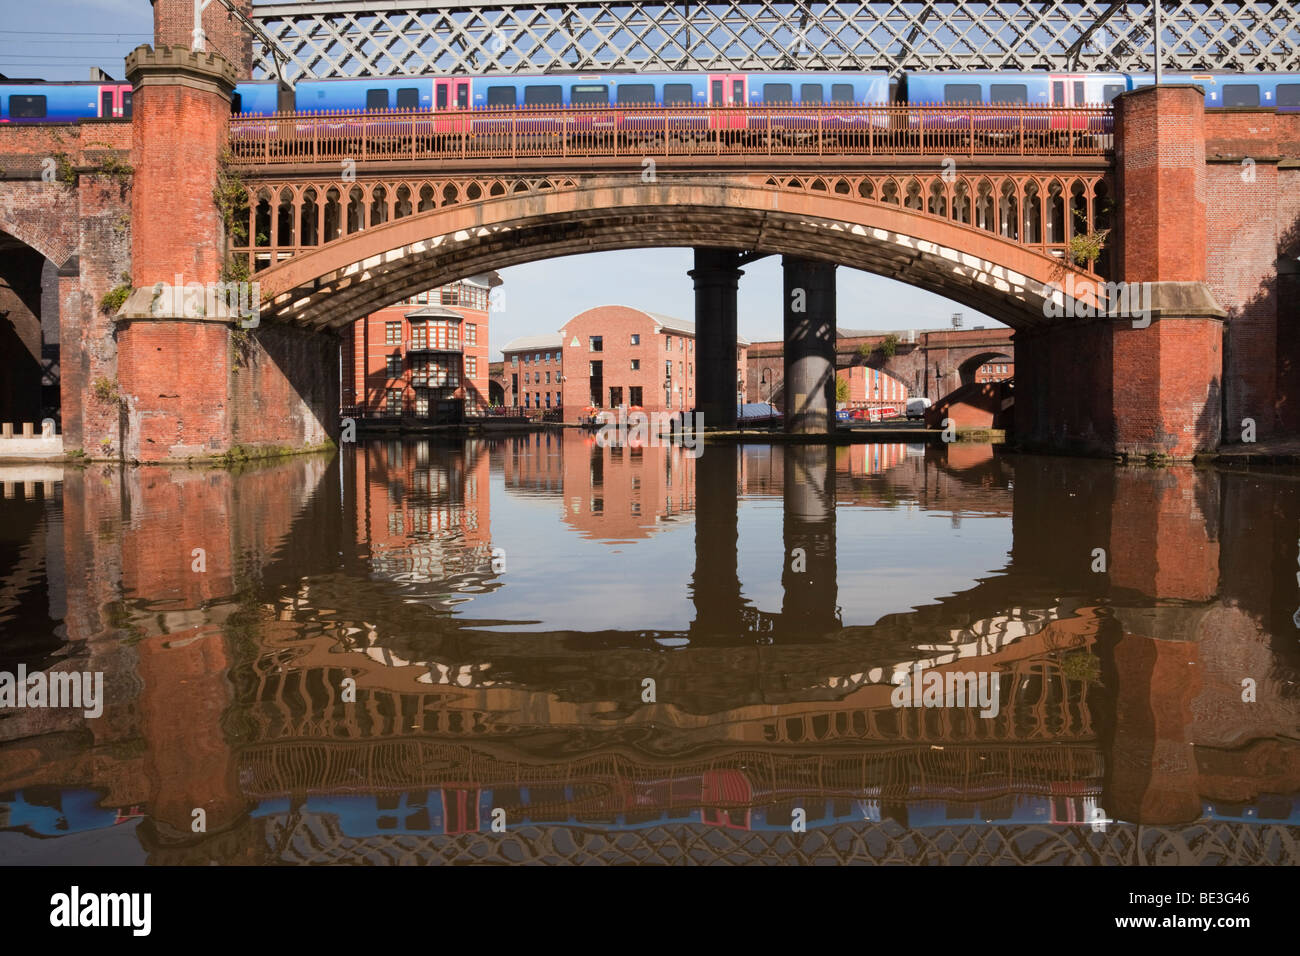 Train crossing Victorian railway viaduct bridge over Bridgewater Canal in Castlefield Urban Heritage Park conservation - Stock Image